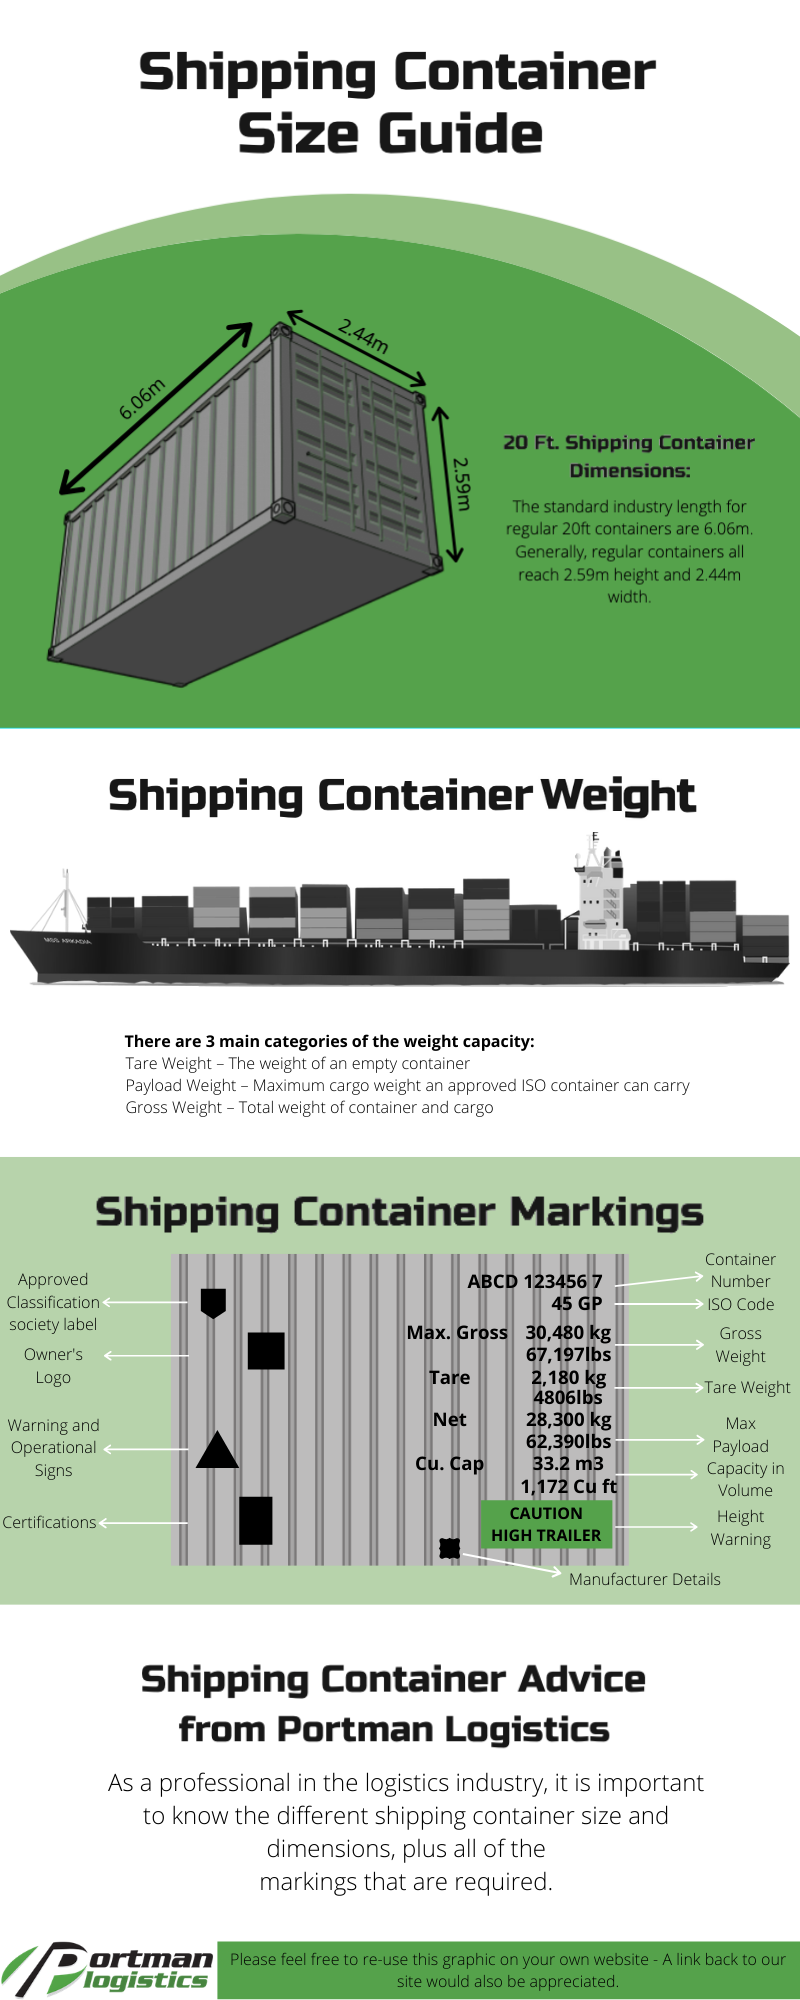 Shipping Container Size Guide | Portman Logistics